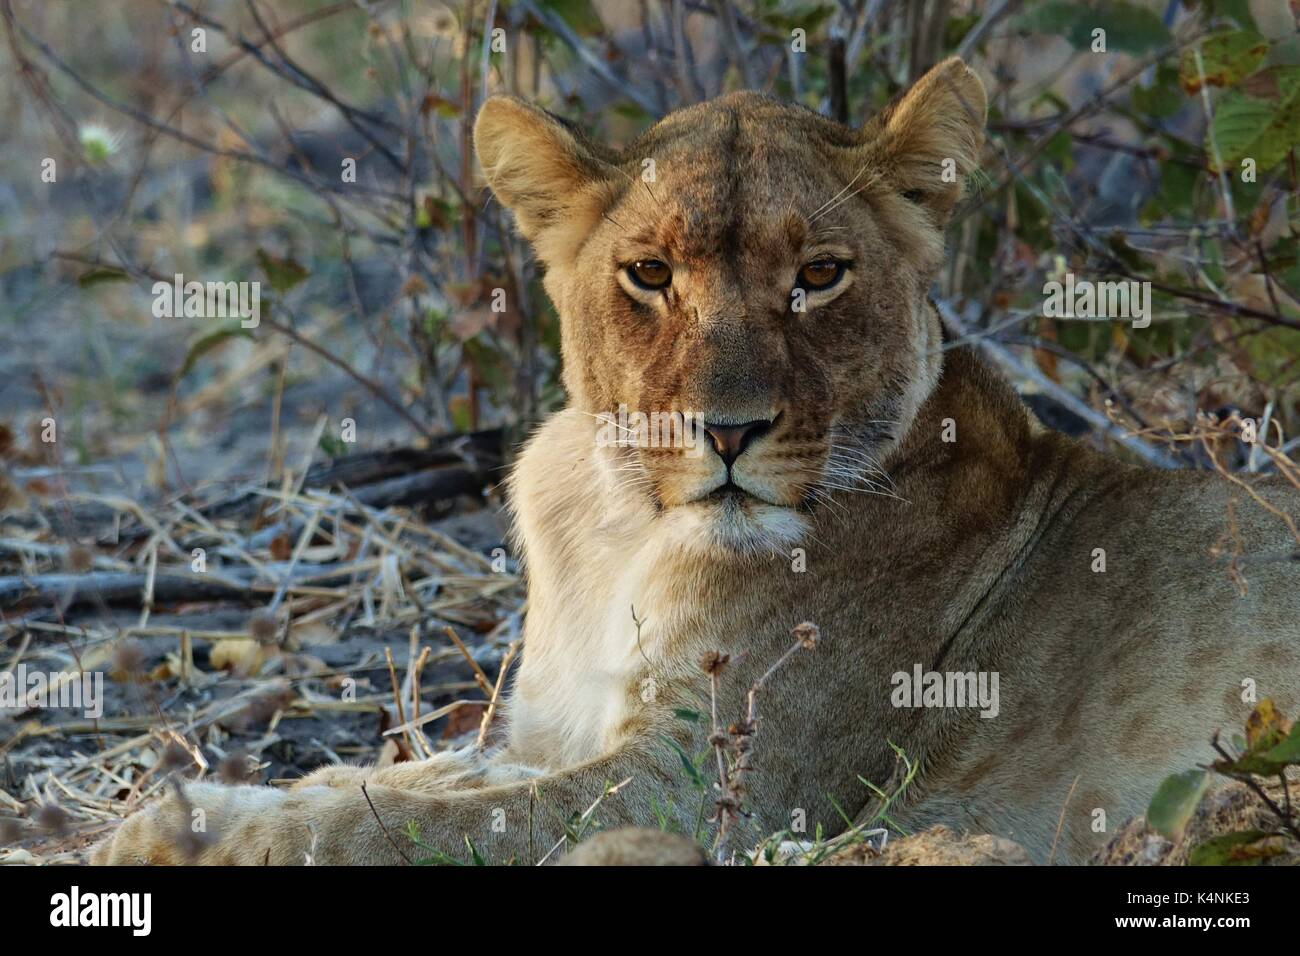 Lioness looking - Stock Image